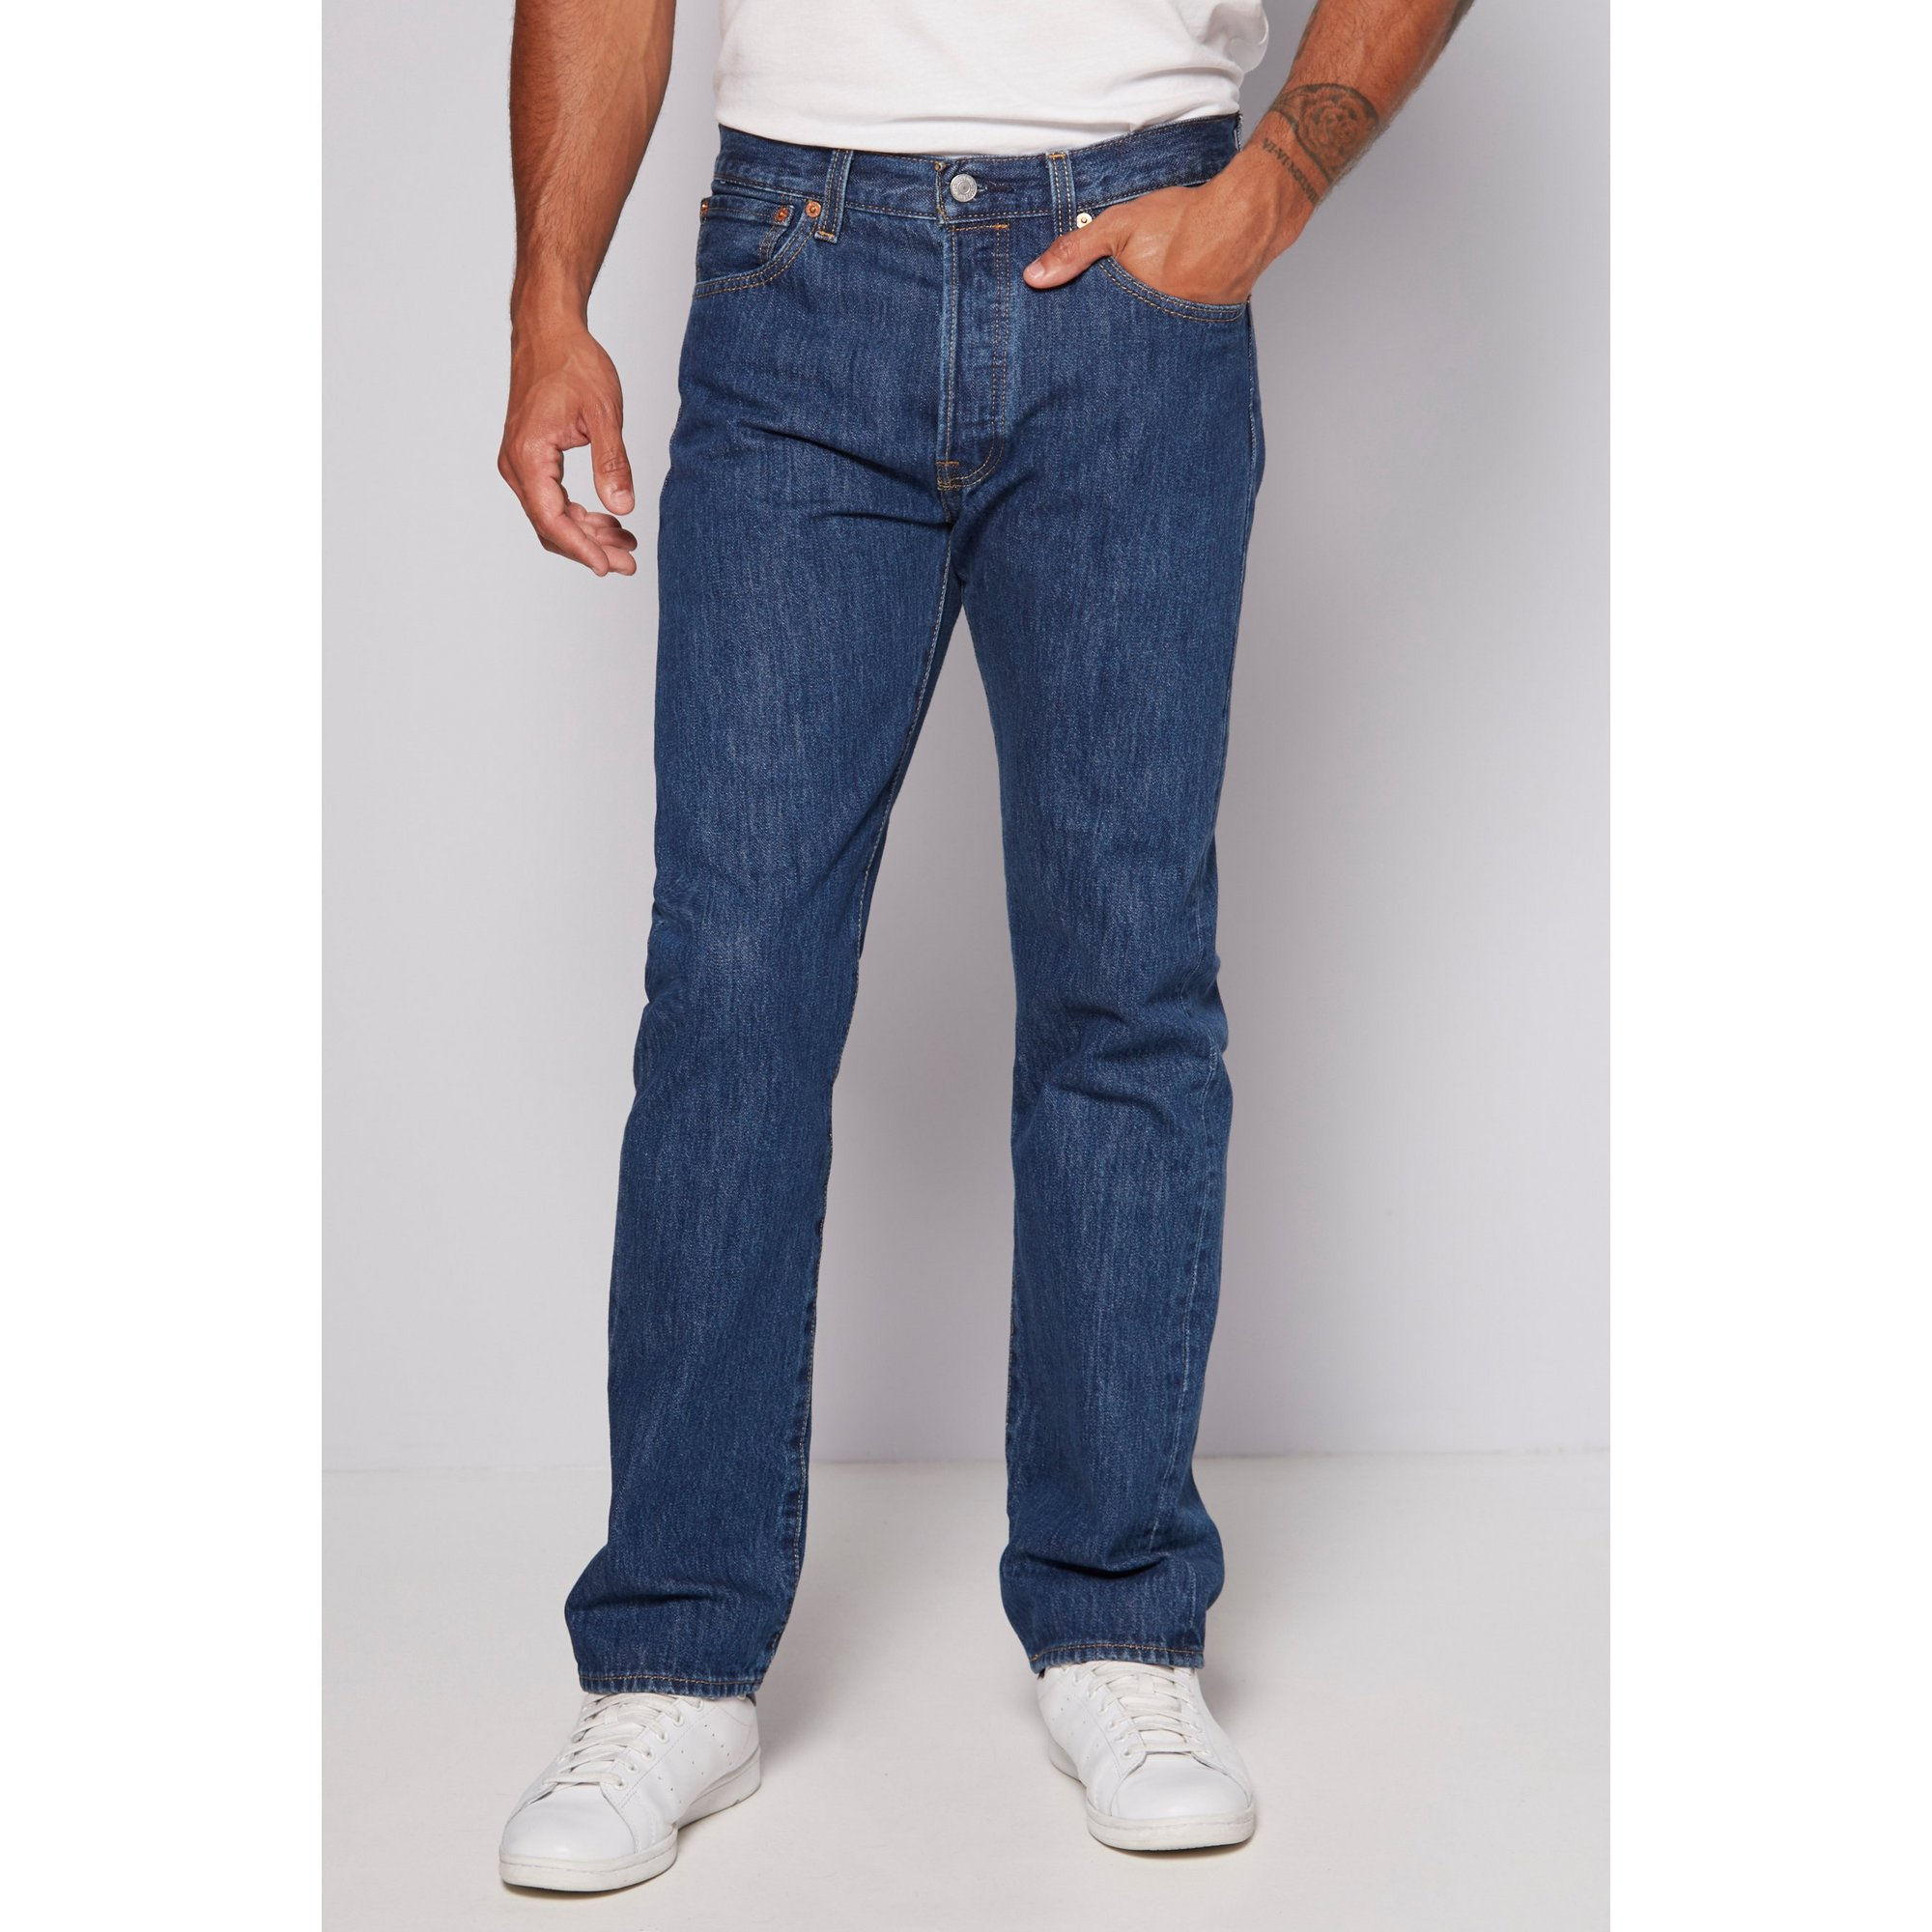 Image of Levis 501 Straight Fit Jeans